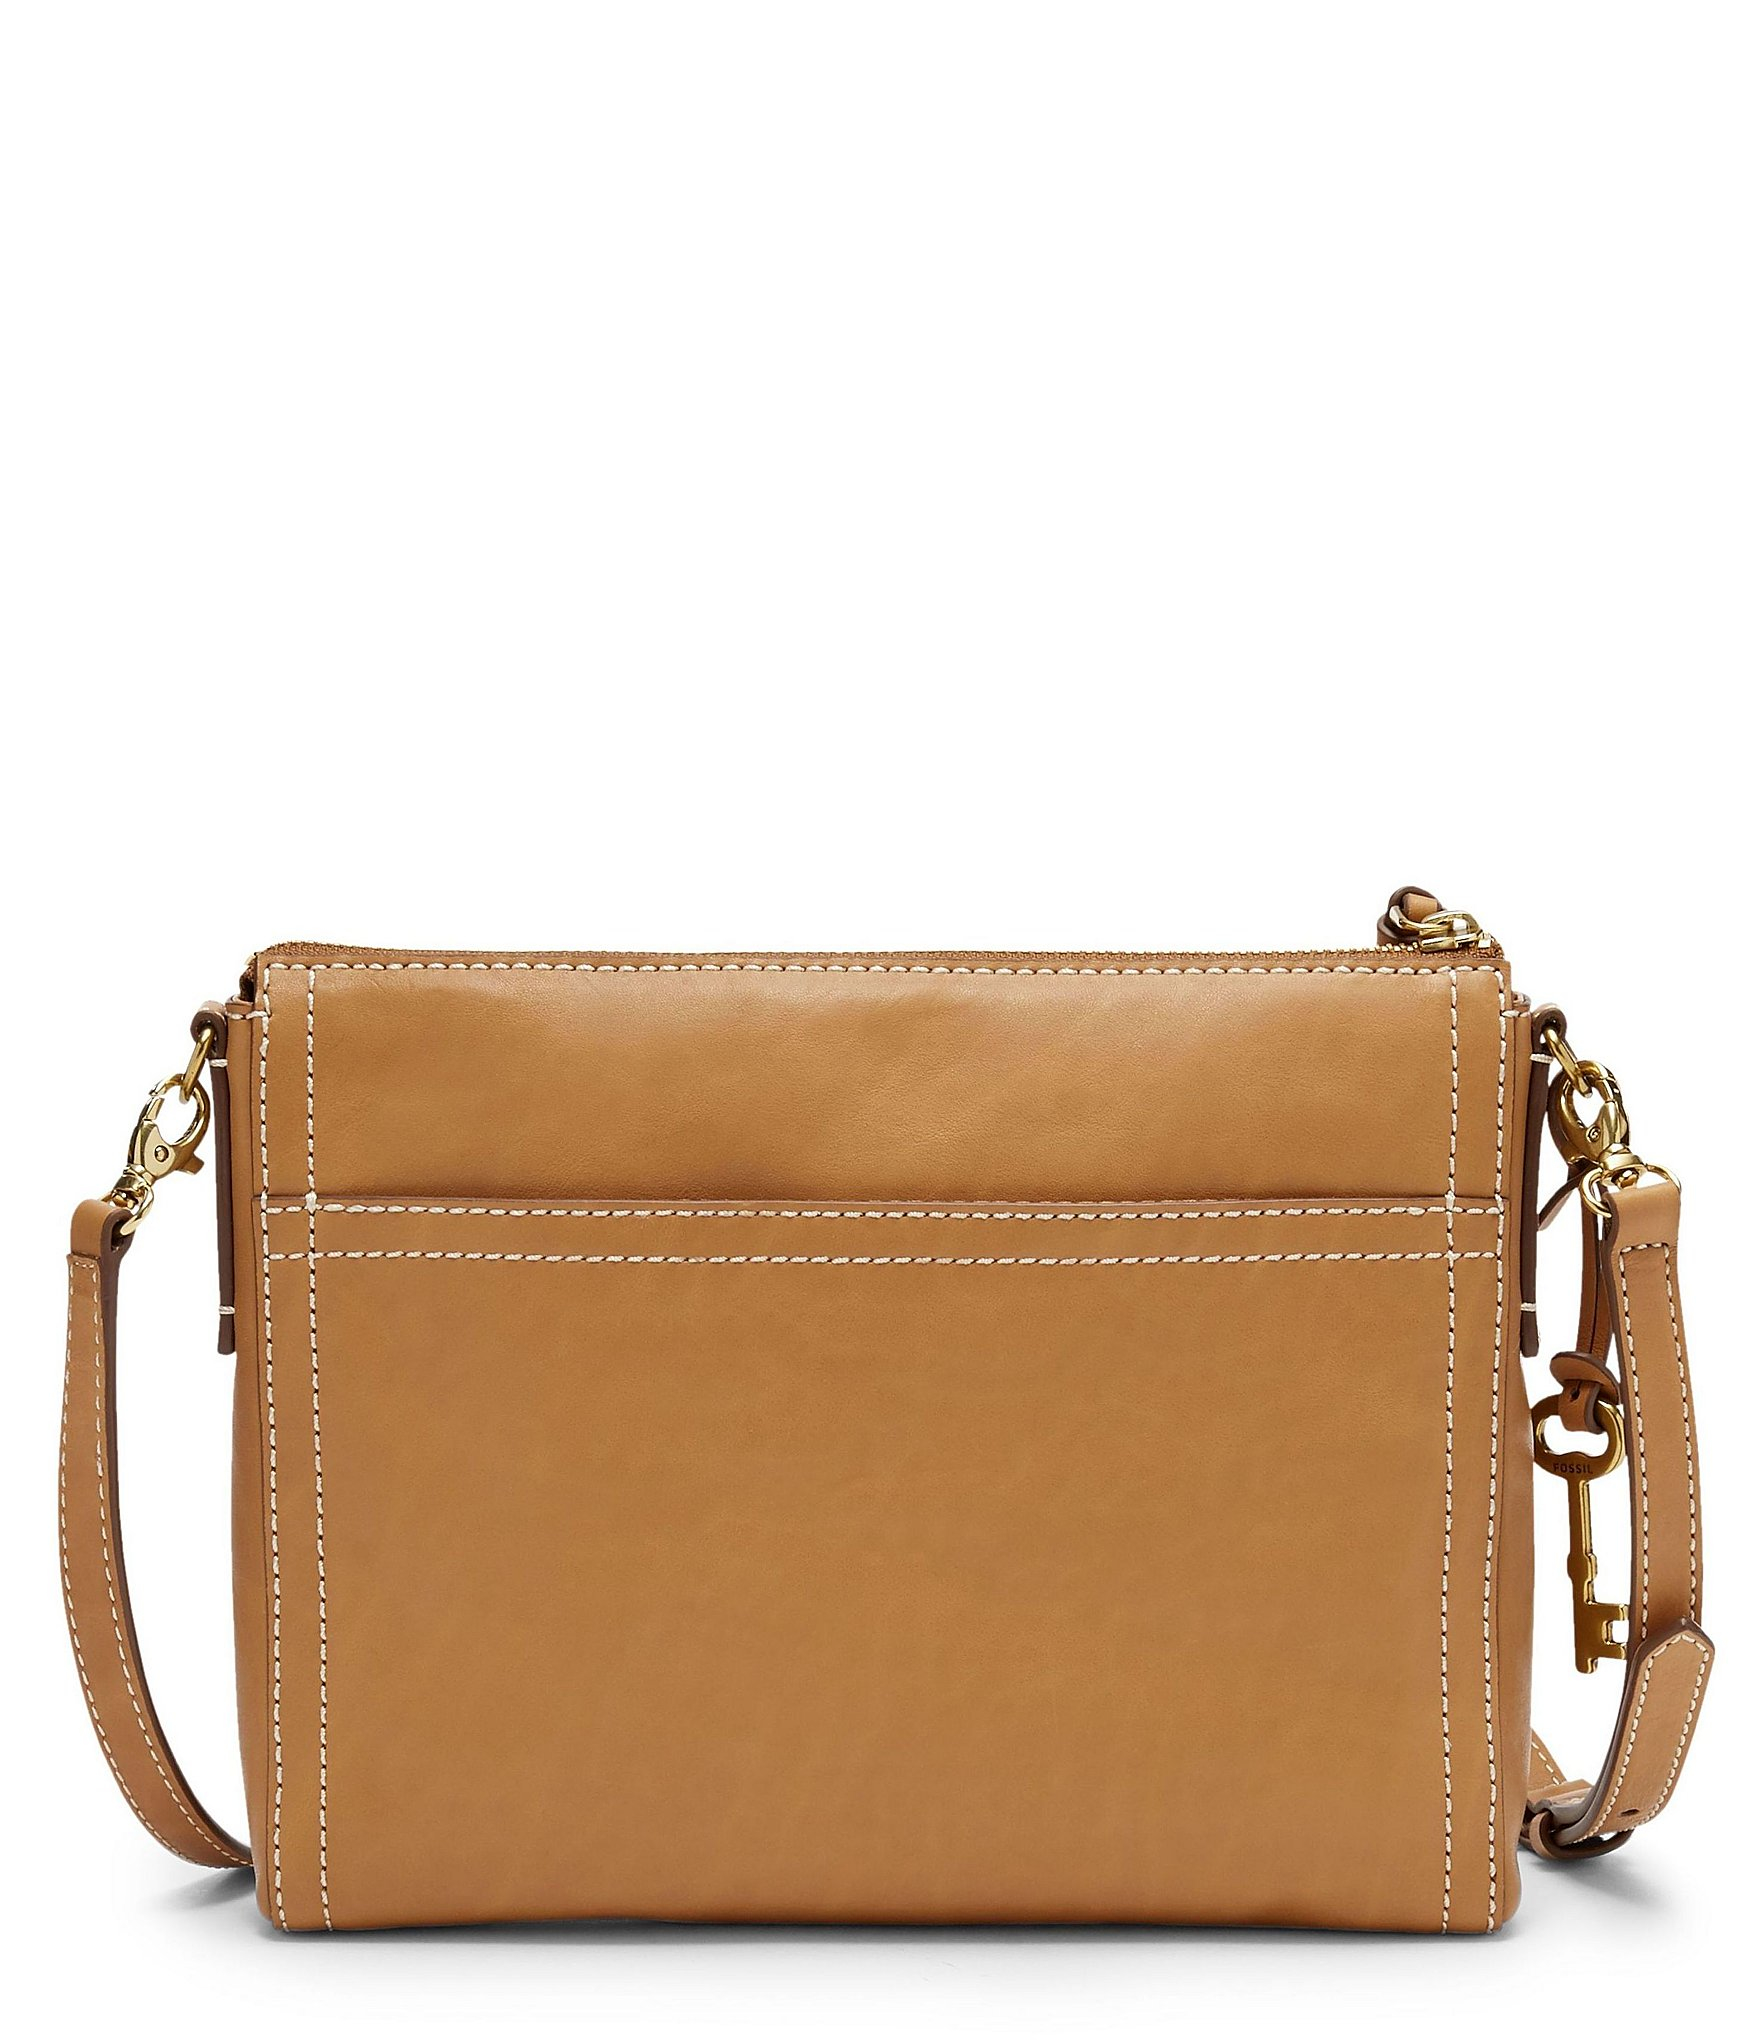 dc4c3d117c53 Fossil Emma East/west Cross-body Bag in Brown - Lyst